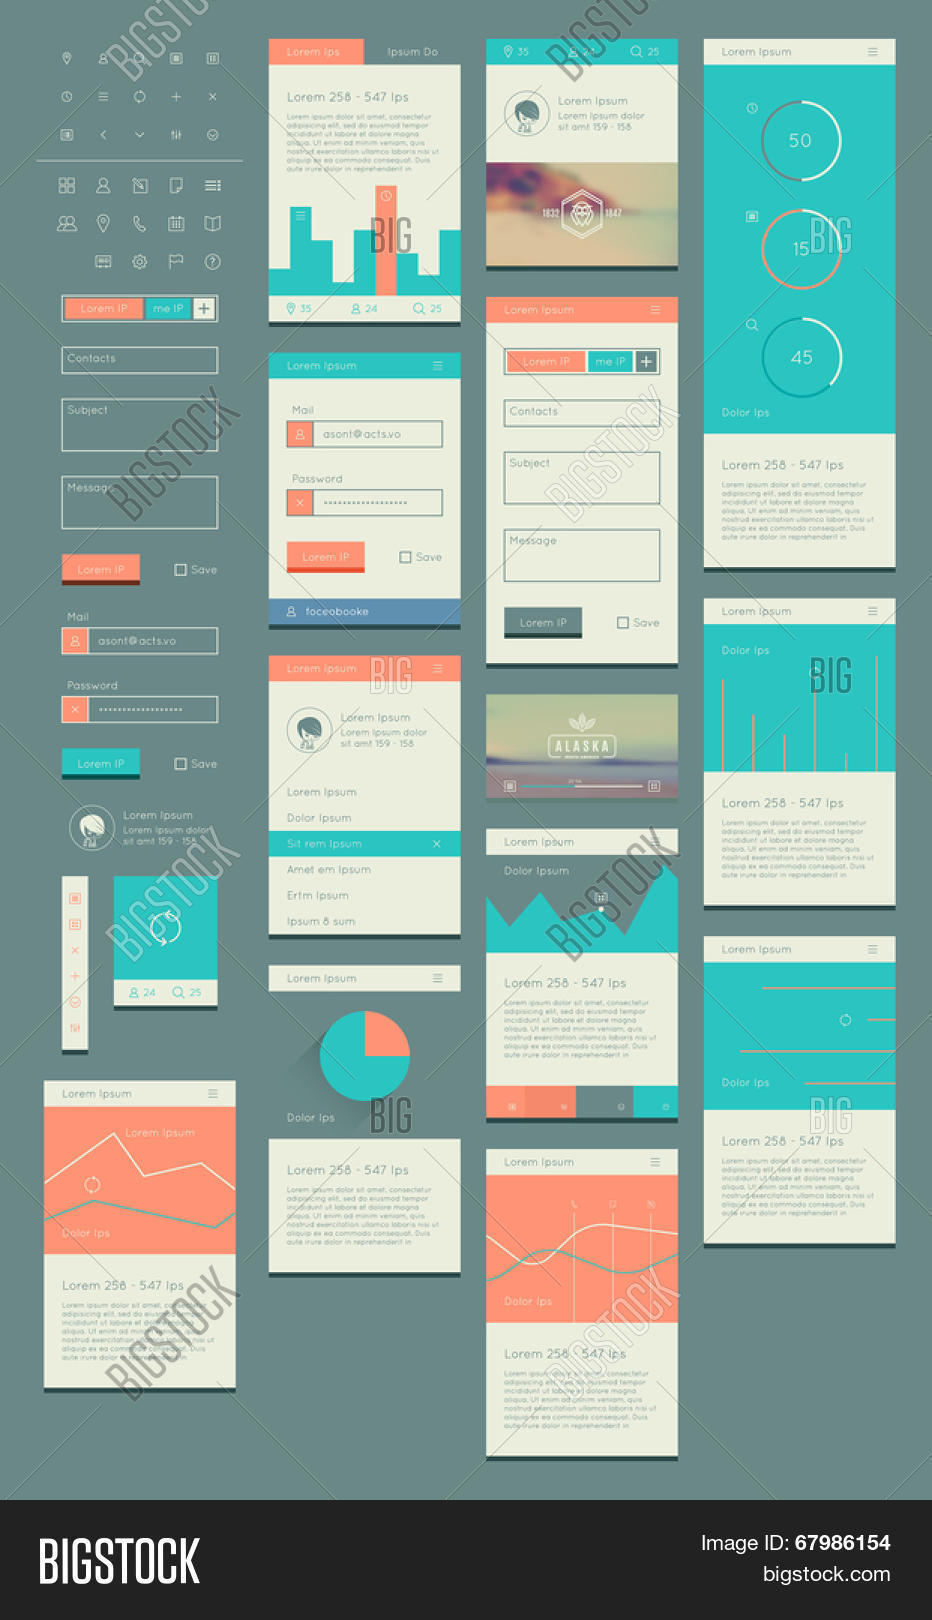 Flat UI Kit Web Mobile, UI Design Vector & Photo | Bigstock